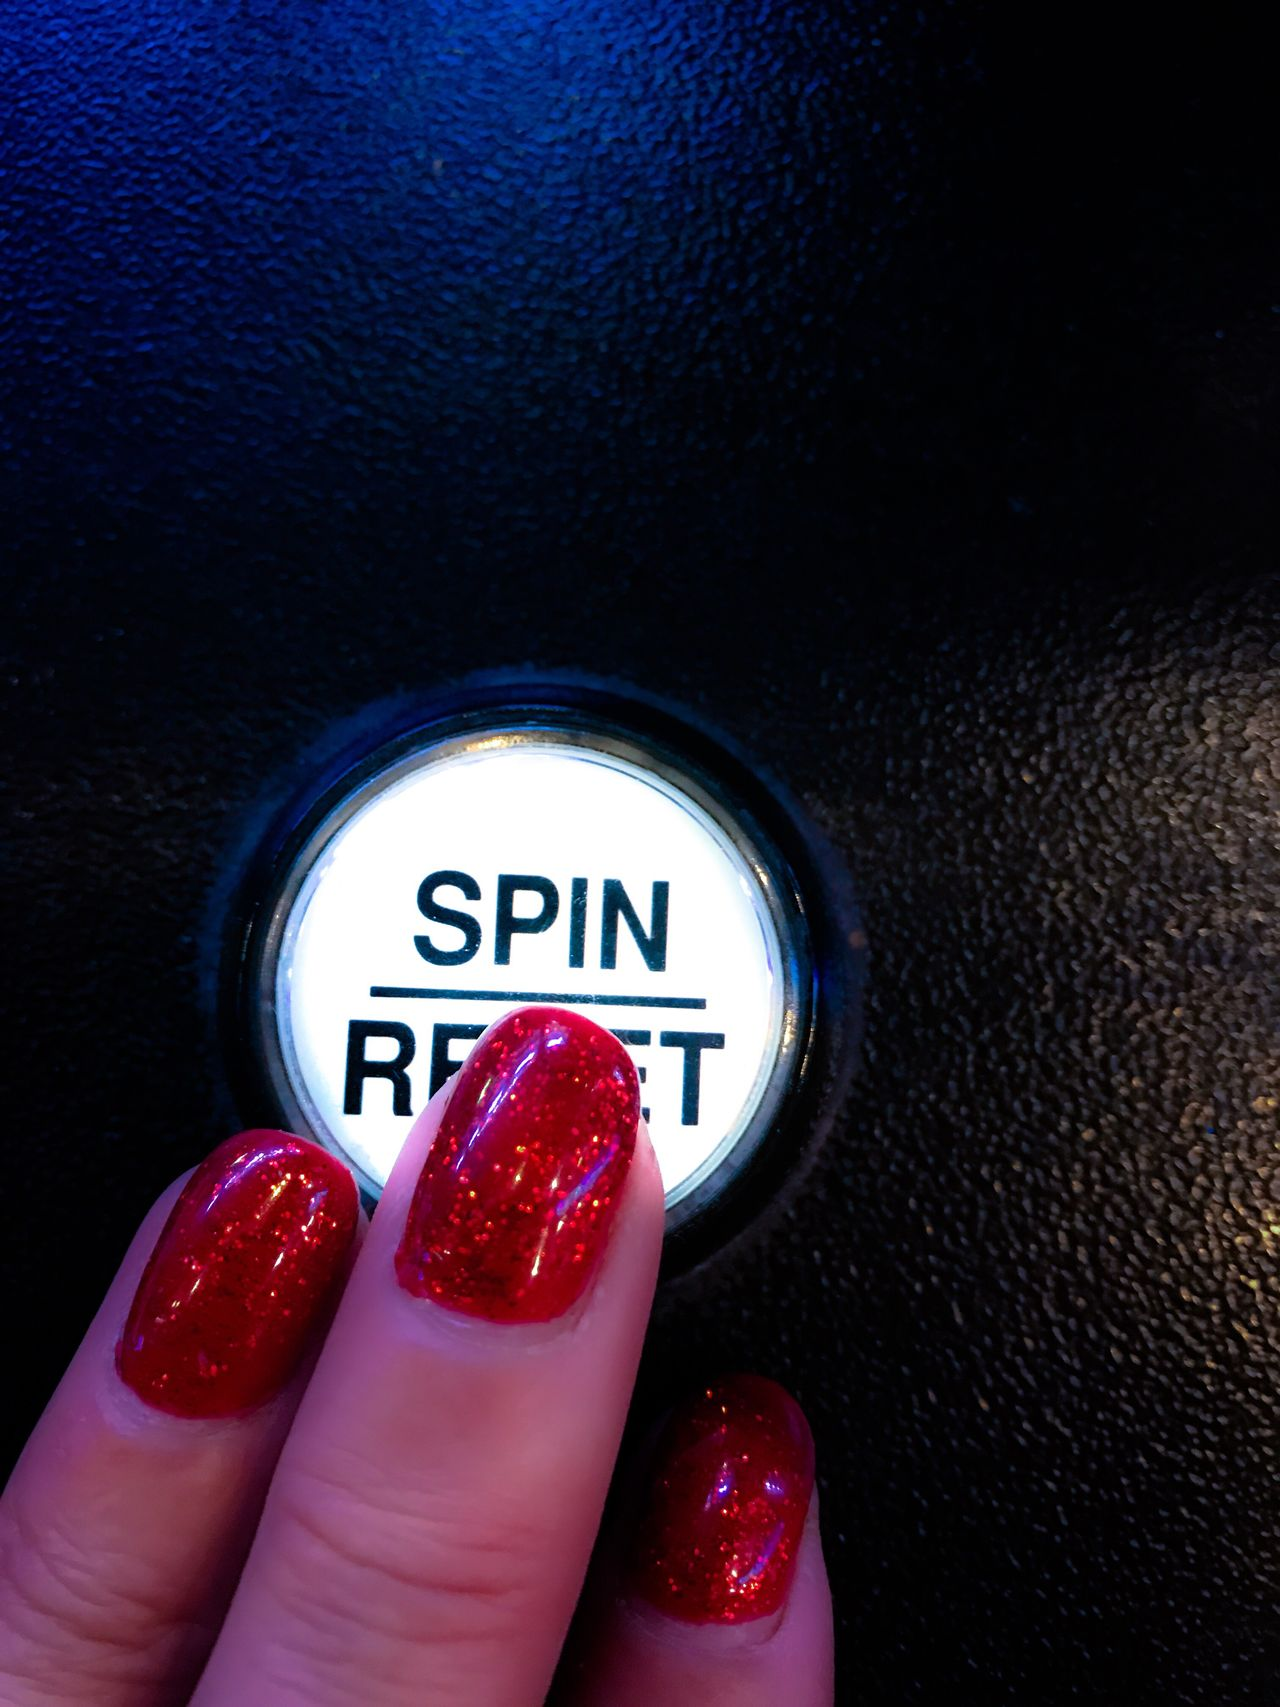 Human Body Part Human Hand One Person Real People Human Finger Close-up Leisure Activity Lifestyles Text Nail Polish Indoors  People Low Section Adult Day Casino Slot Machine Button Spin Casino Night Casinolife Gambling Chance Encounters